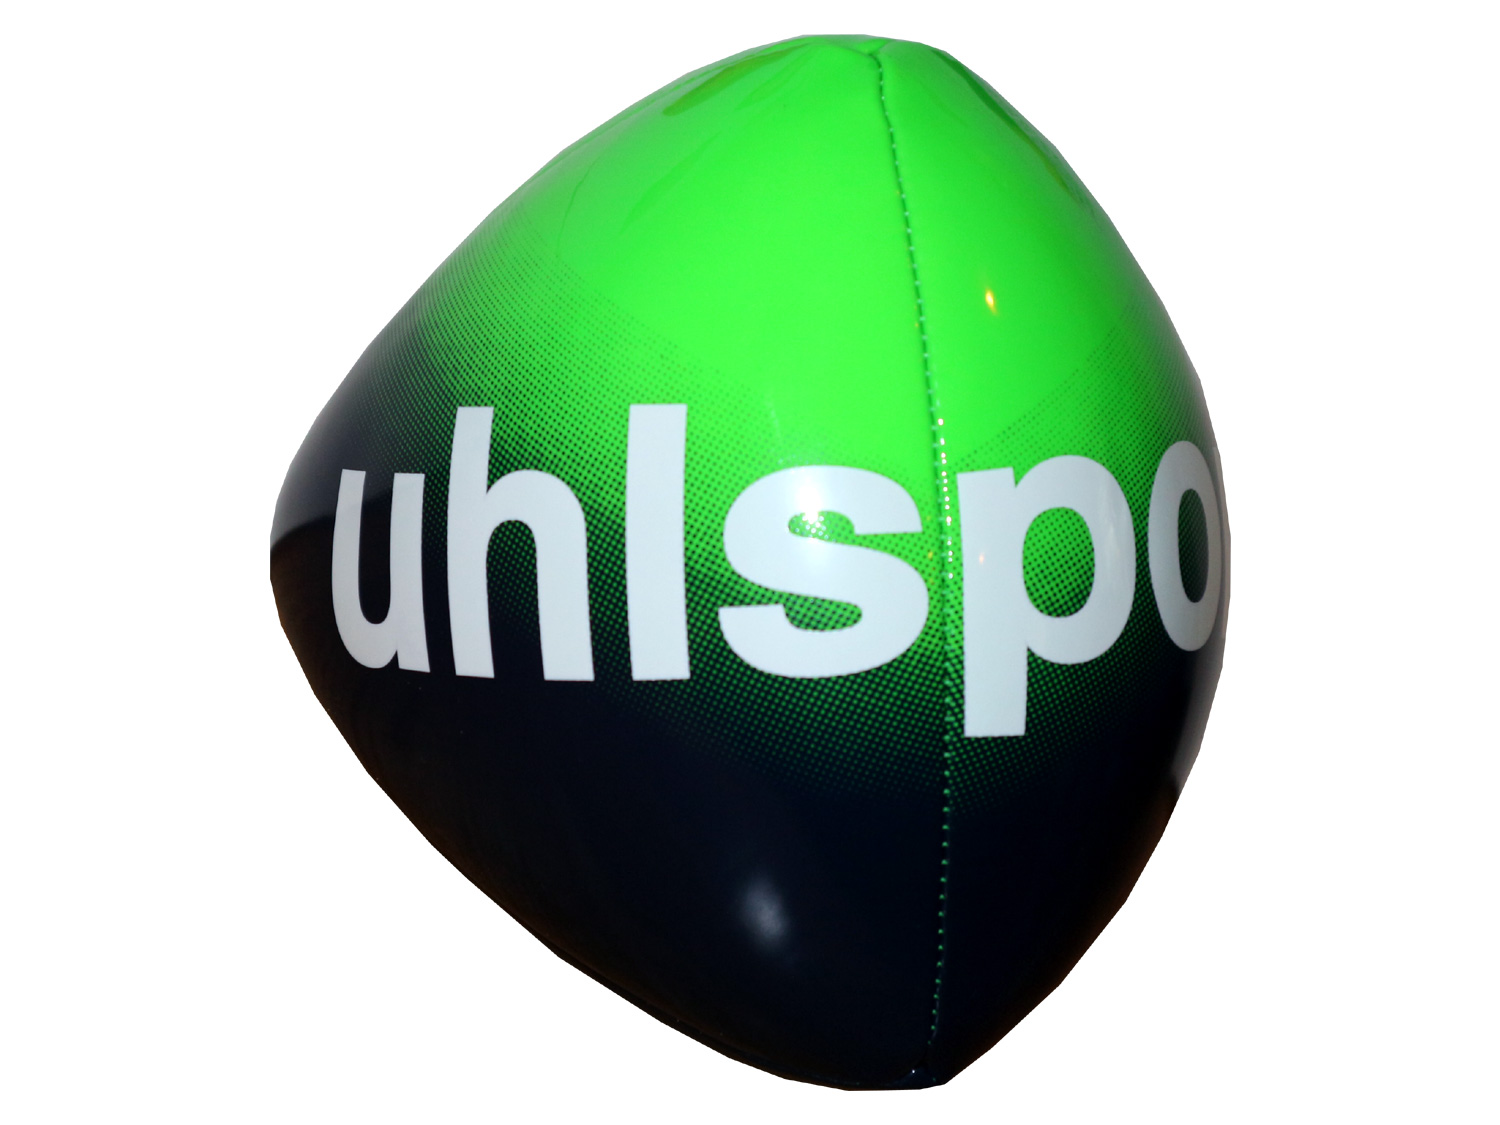 Uhlsport Reflex-Ball grün